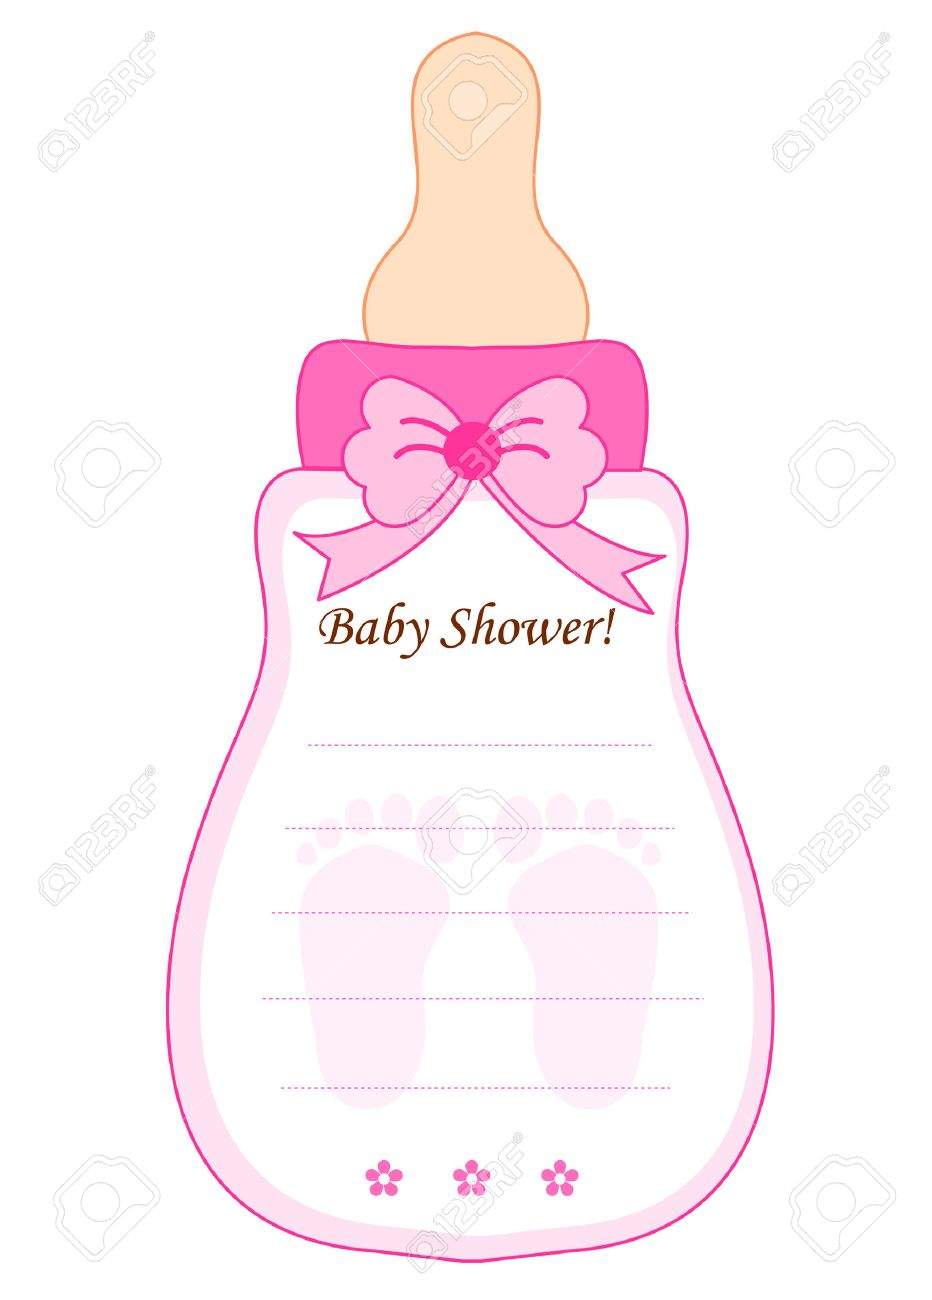 Cute Feeding Bottle Shaped Baby Shower Invitation Card Template - Card template free: invitation card template for baby shower